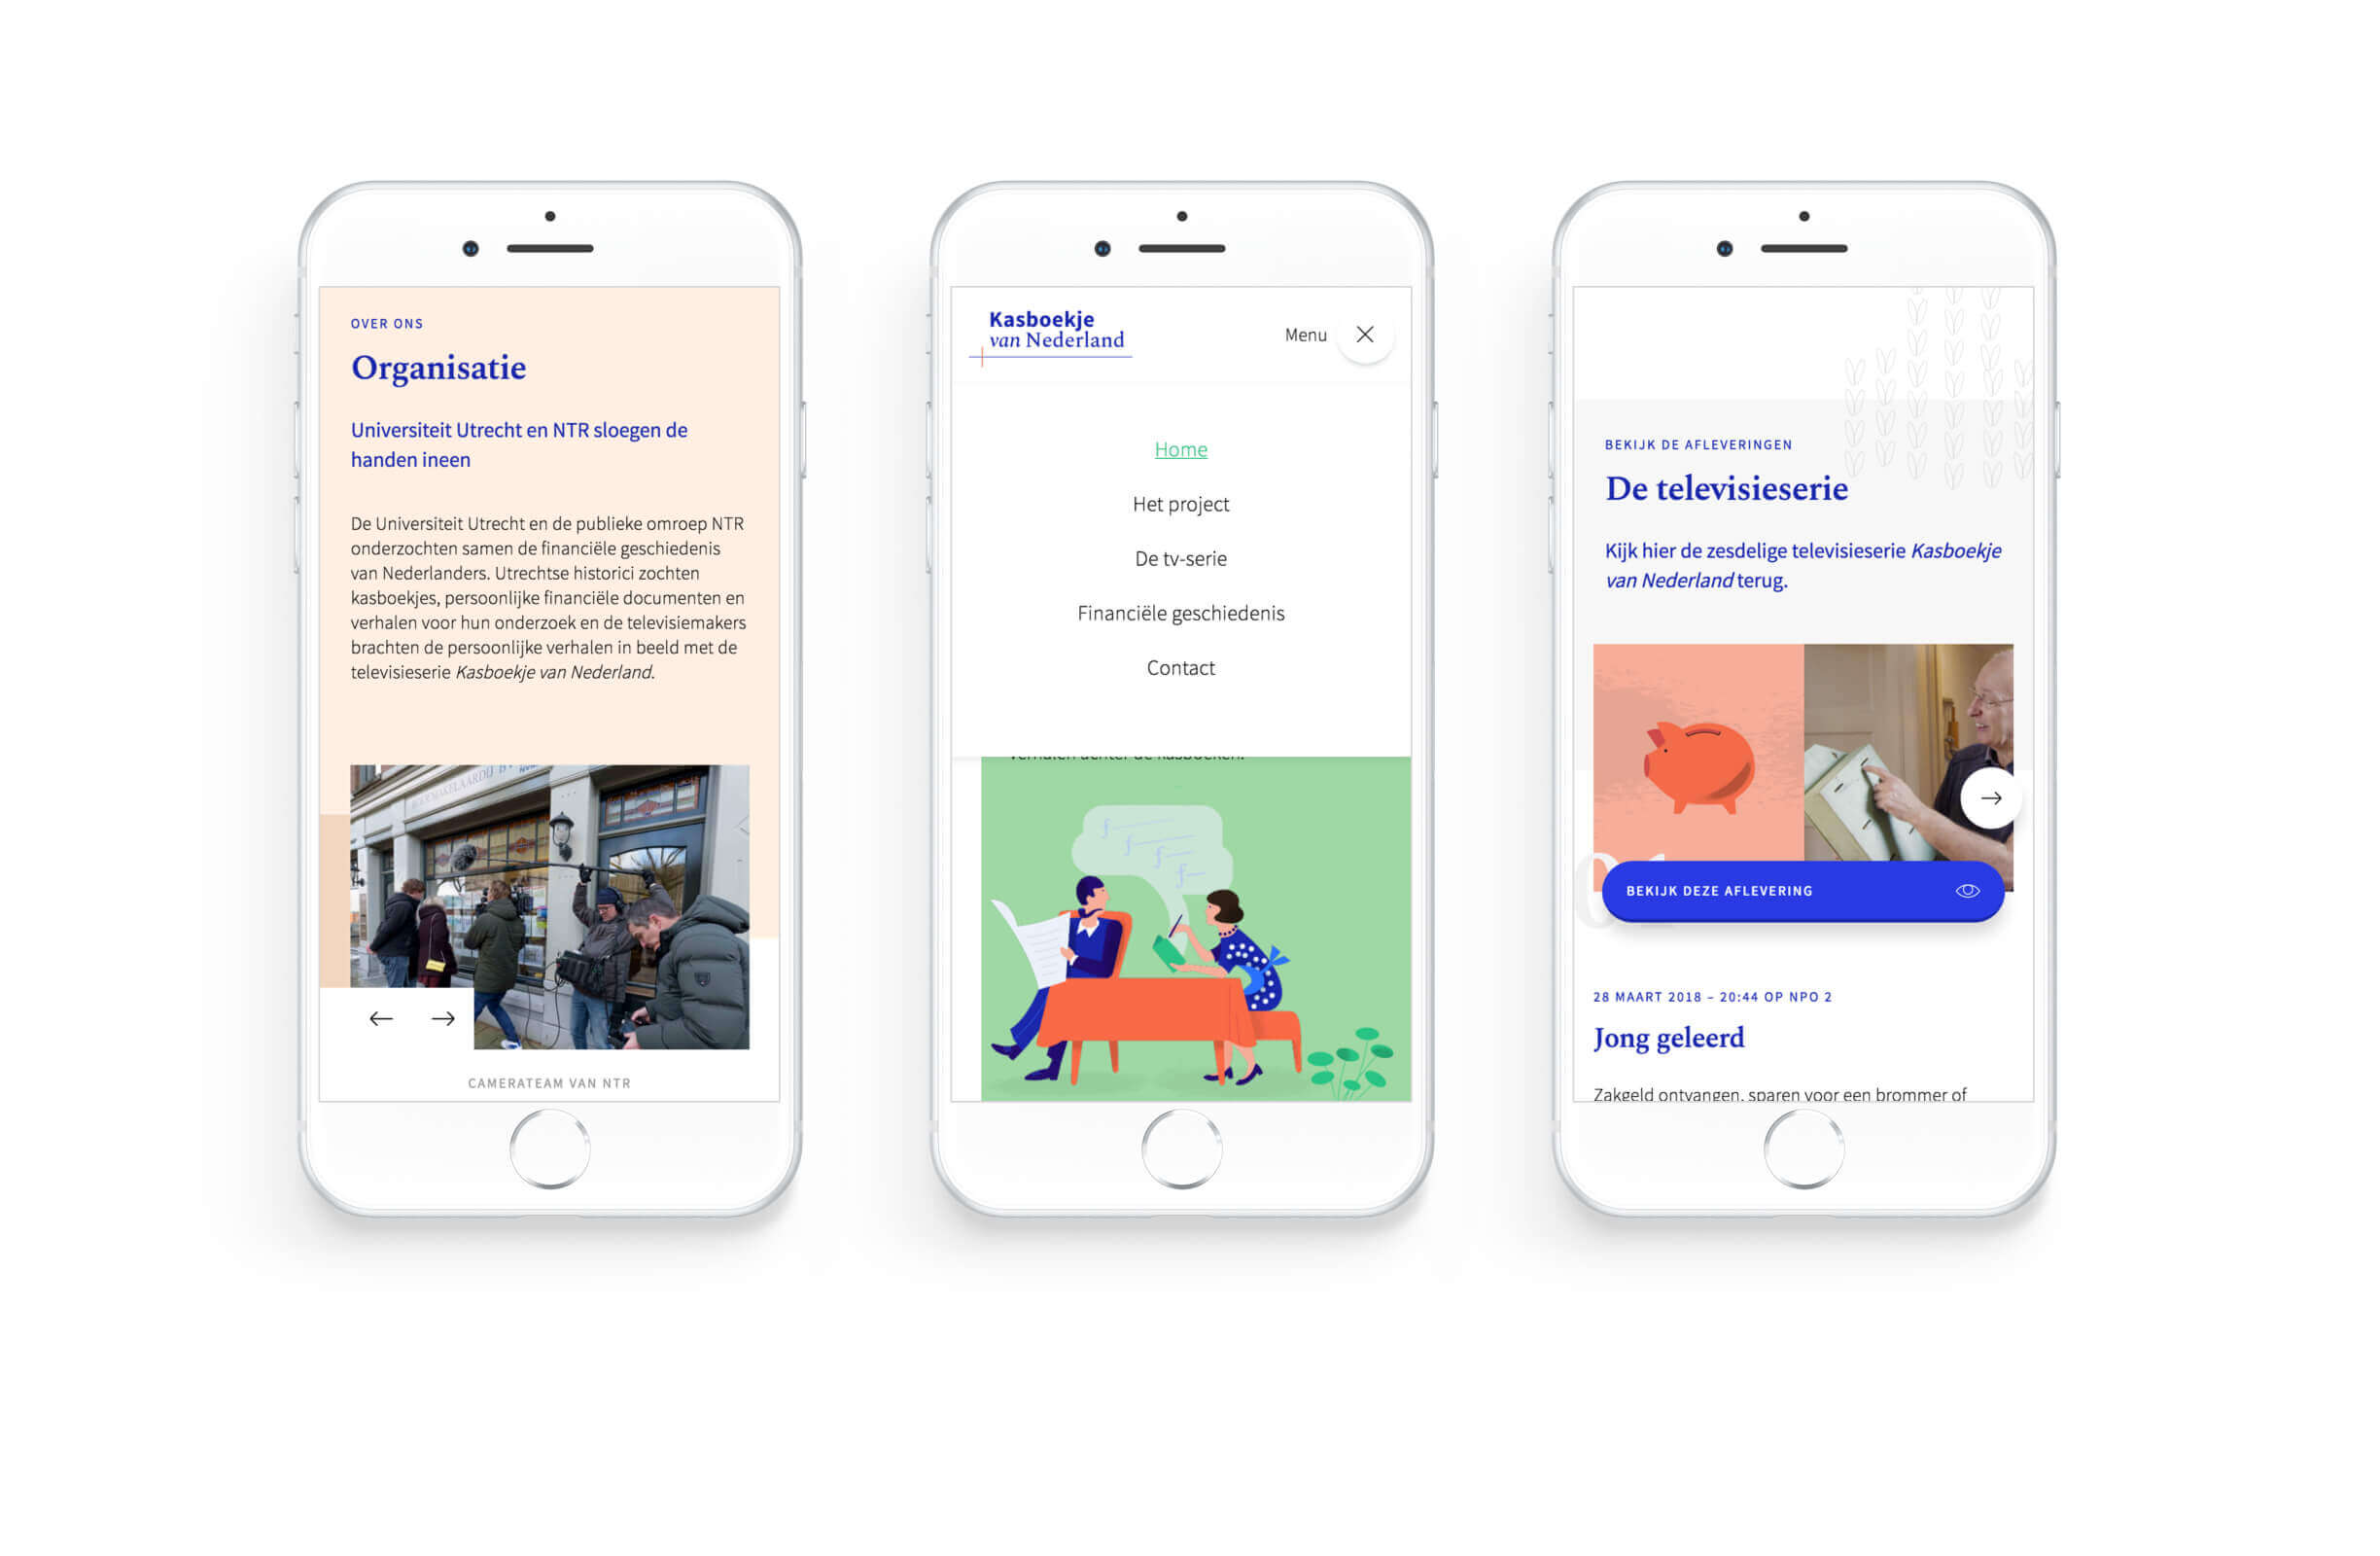 3 iPhone mockups show the Kasboekje van Nederland website.